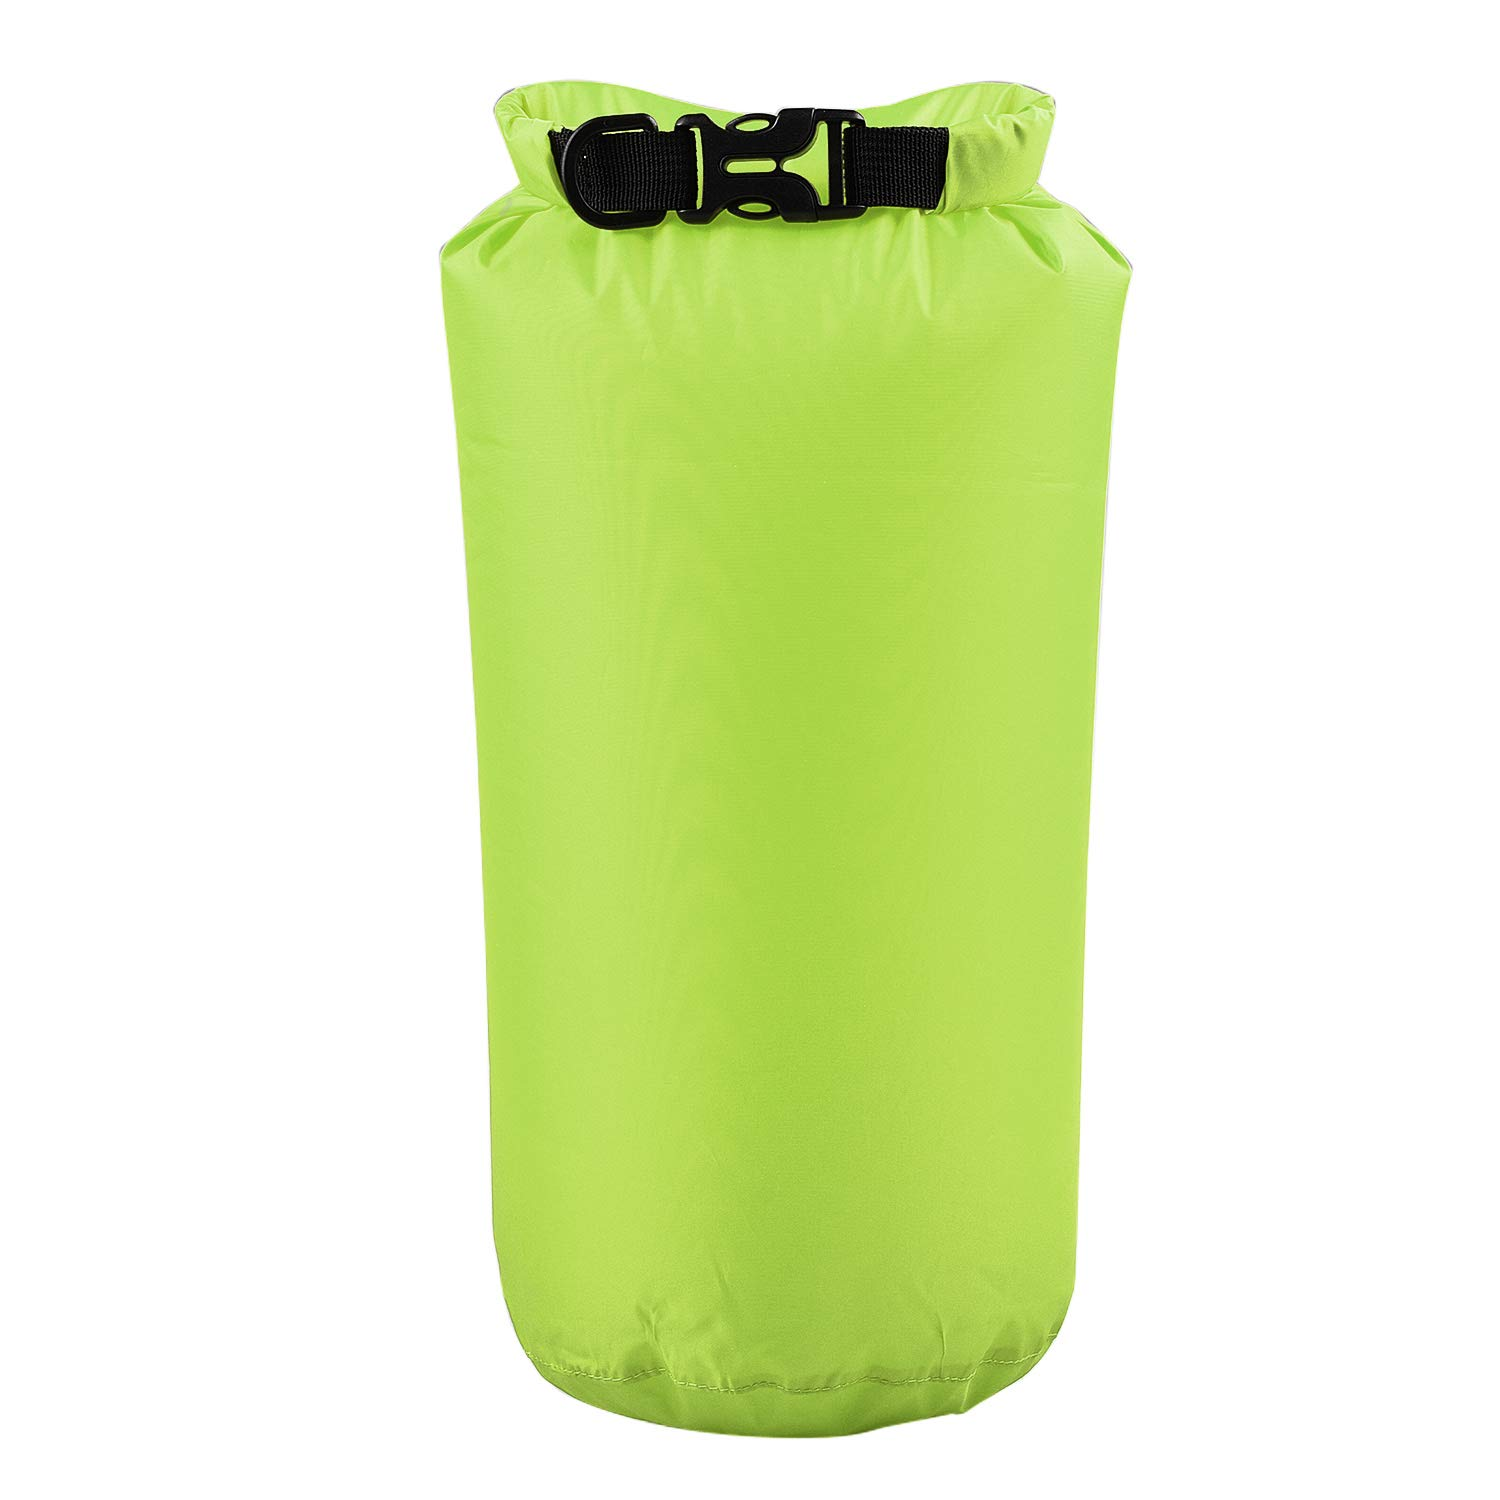 3Pcs Set Waterproof Dry Bag Storage Pouch Bag Outdoor Beach Sack for Travel Rafting Drifting Swimming Snorkeling